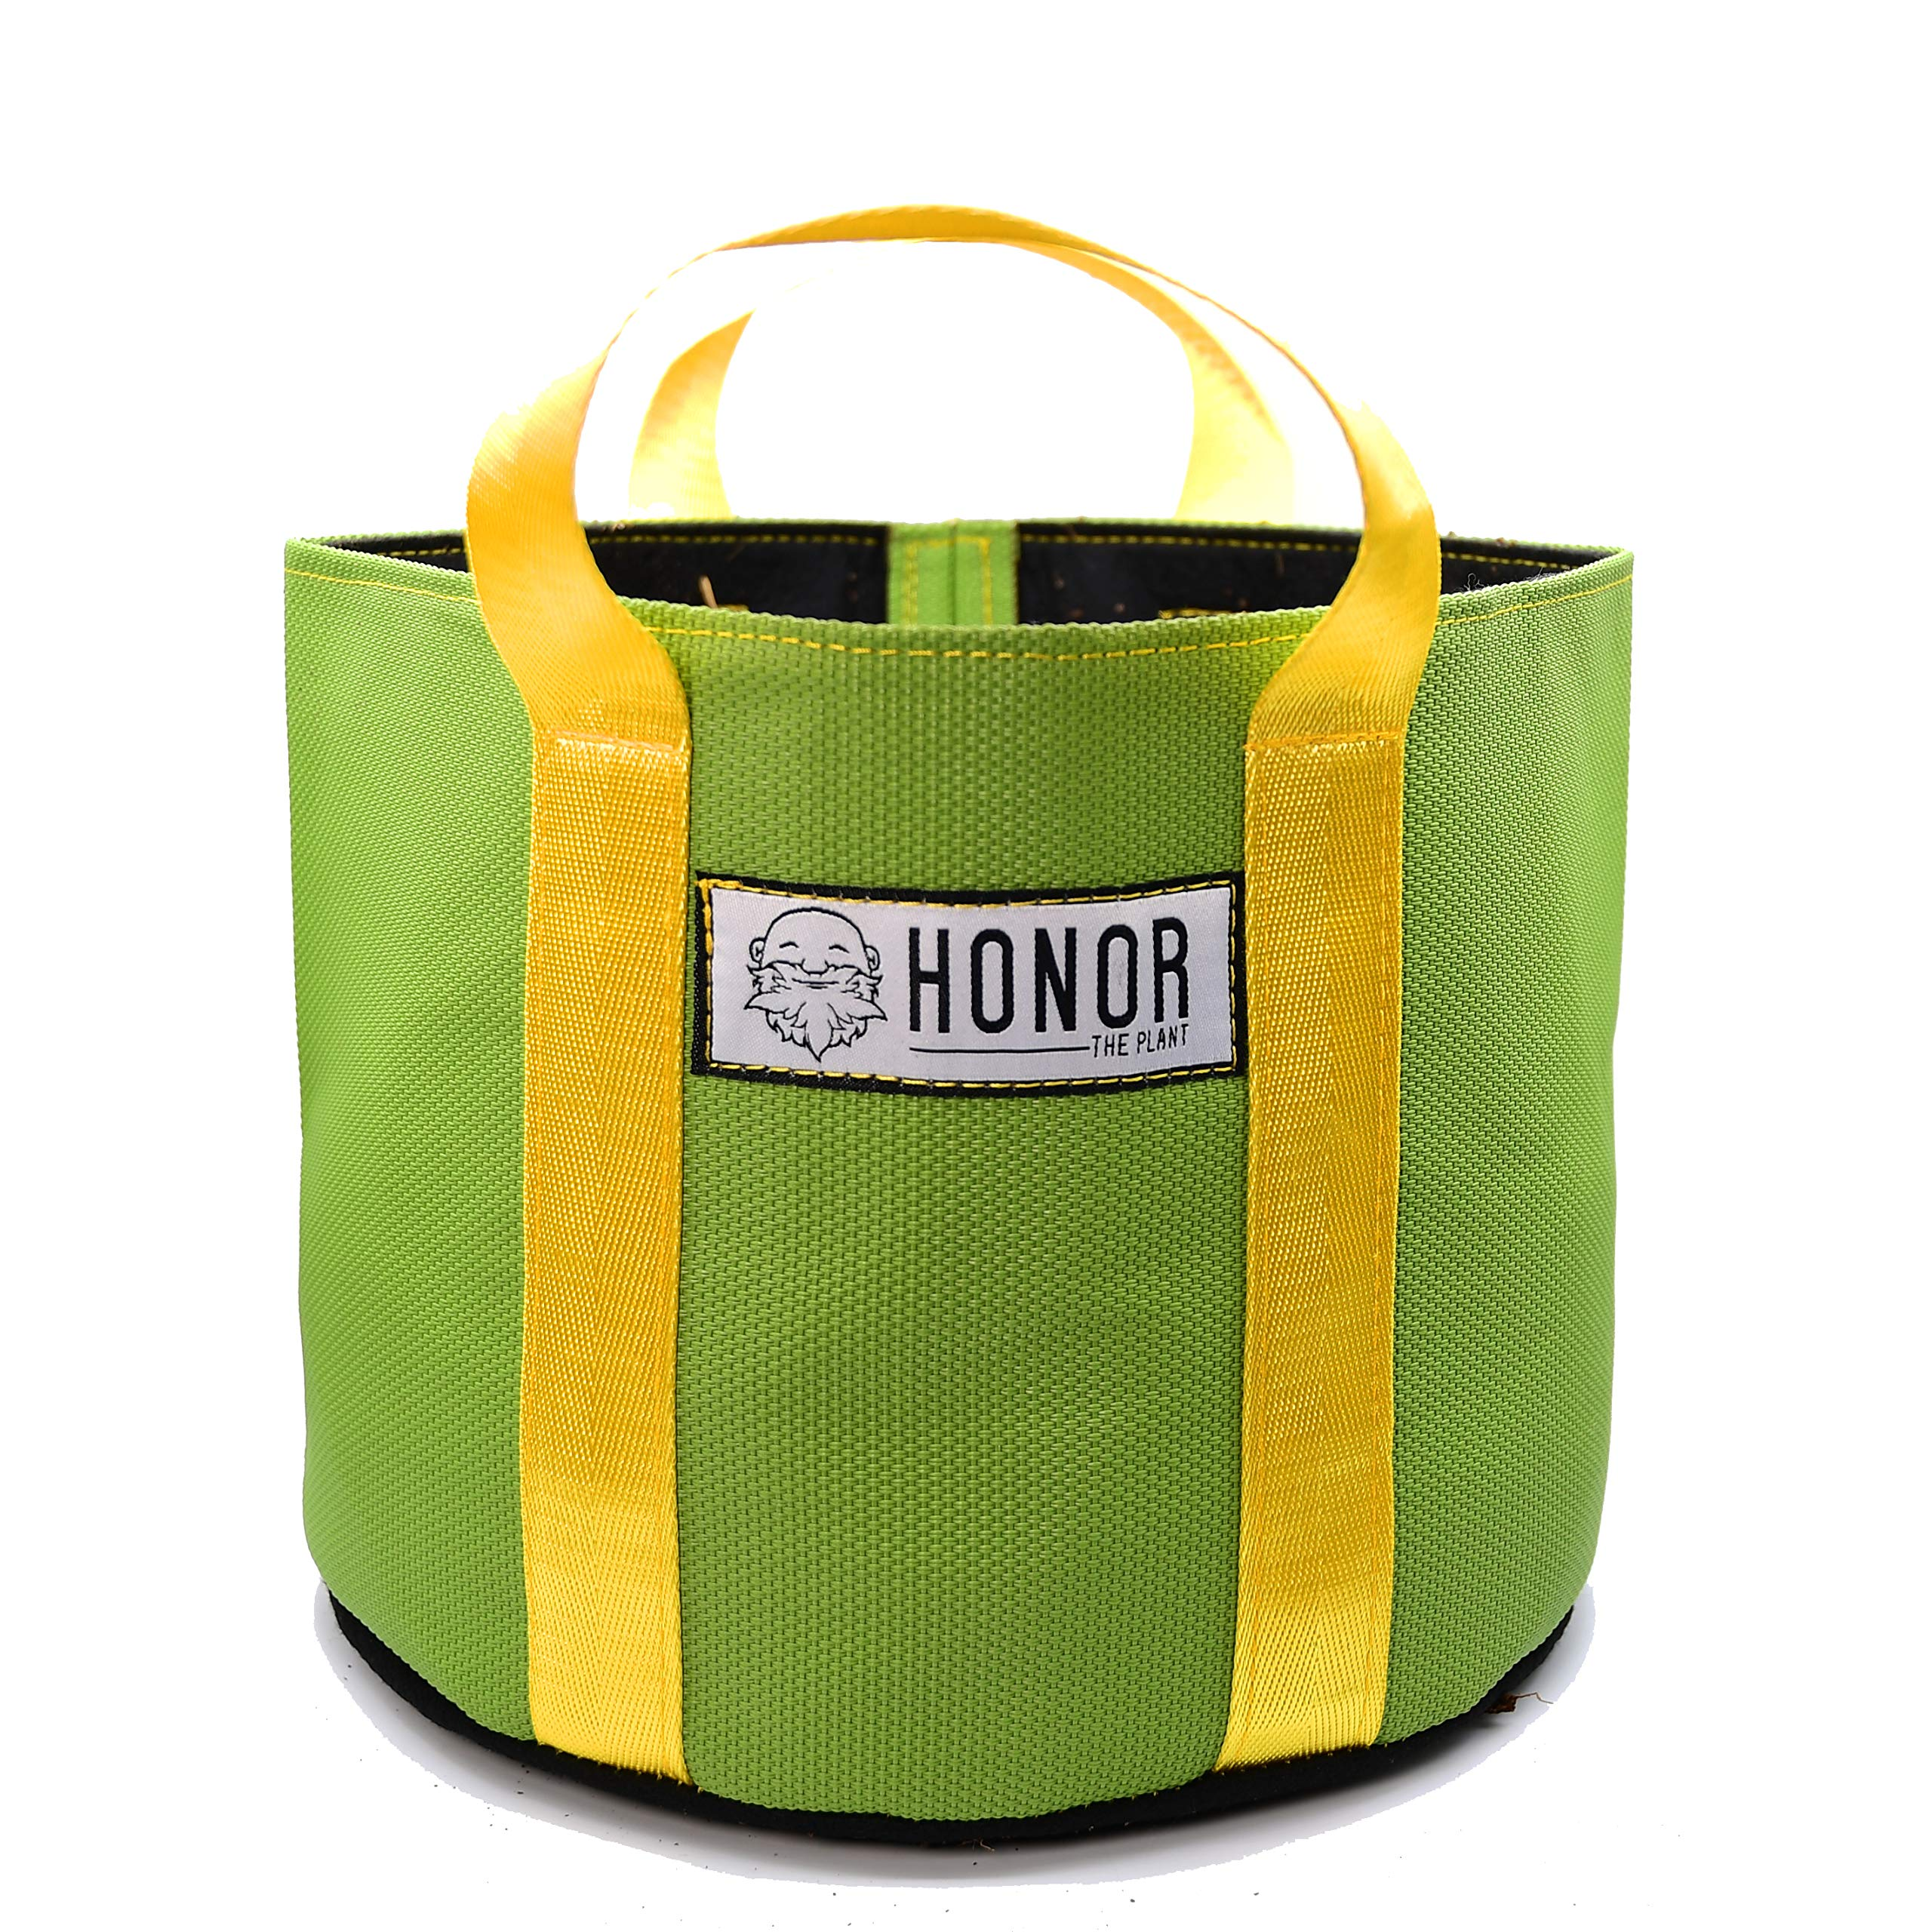 Honor Pro Series 8 Gallon Green CannaWall with Yellow Handles Indoor/Outdoor Fabric Grow Bags, Pack of 3 Bags by Honor the Plant